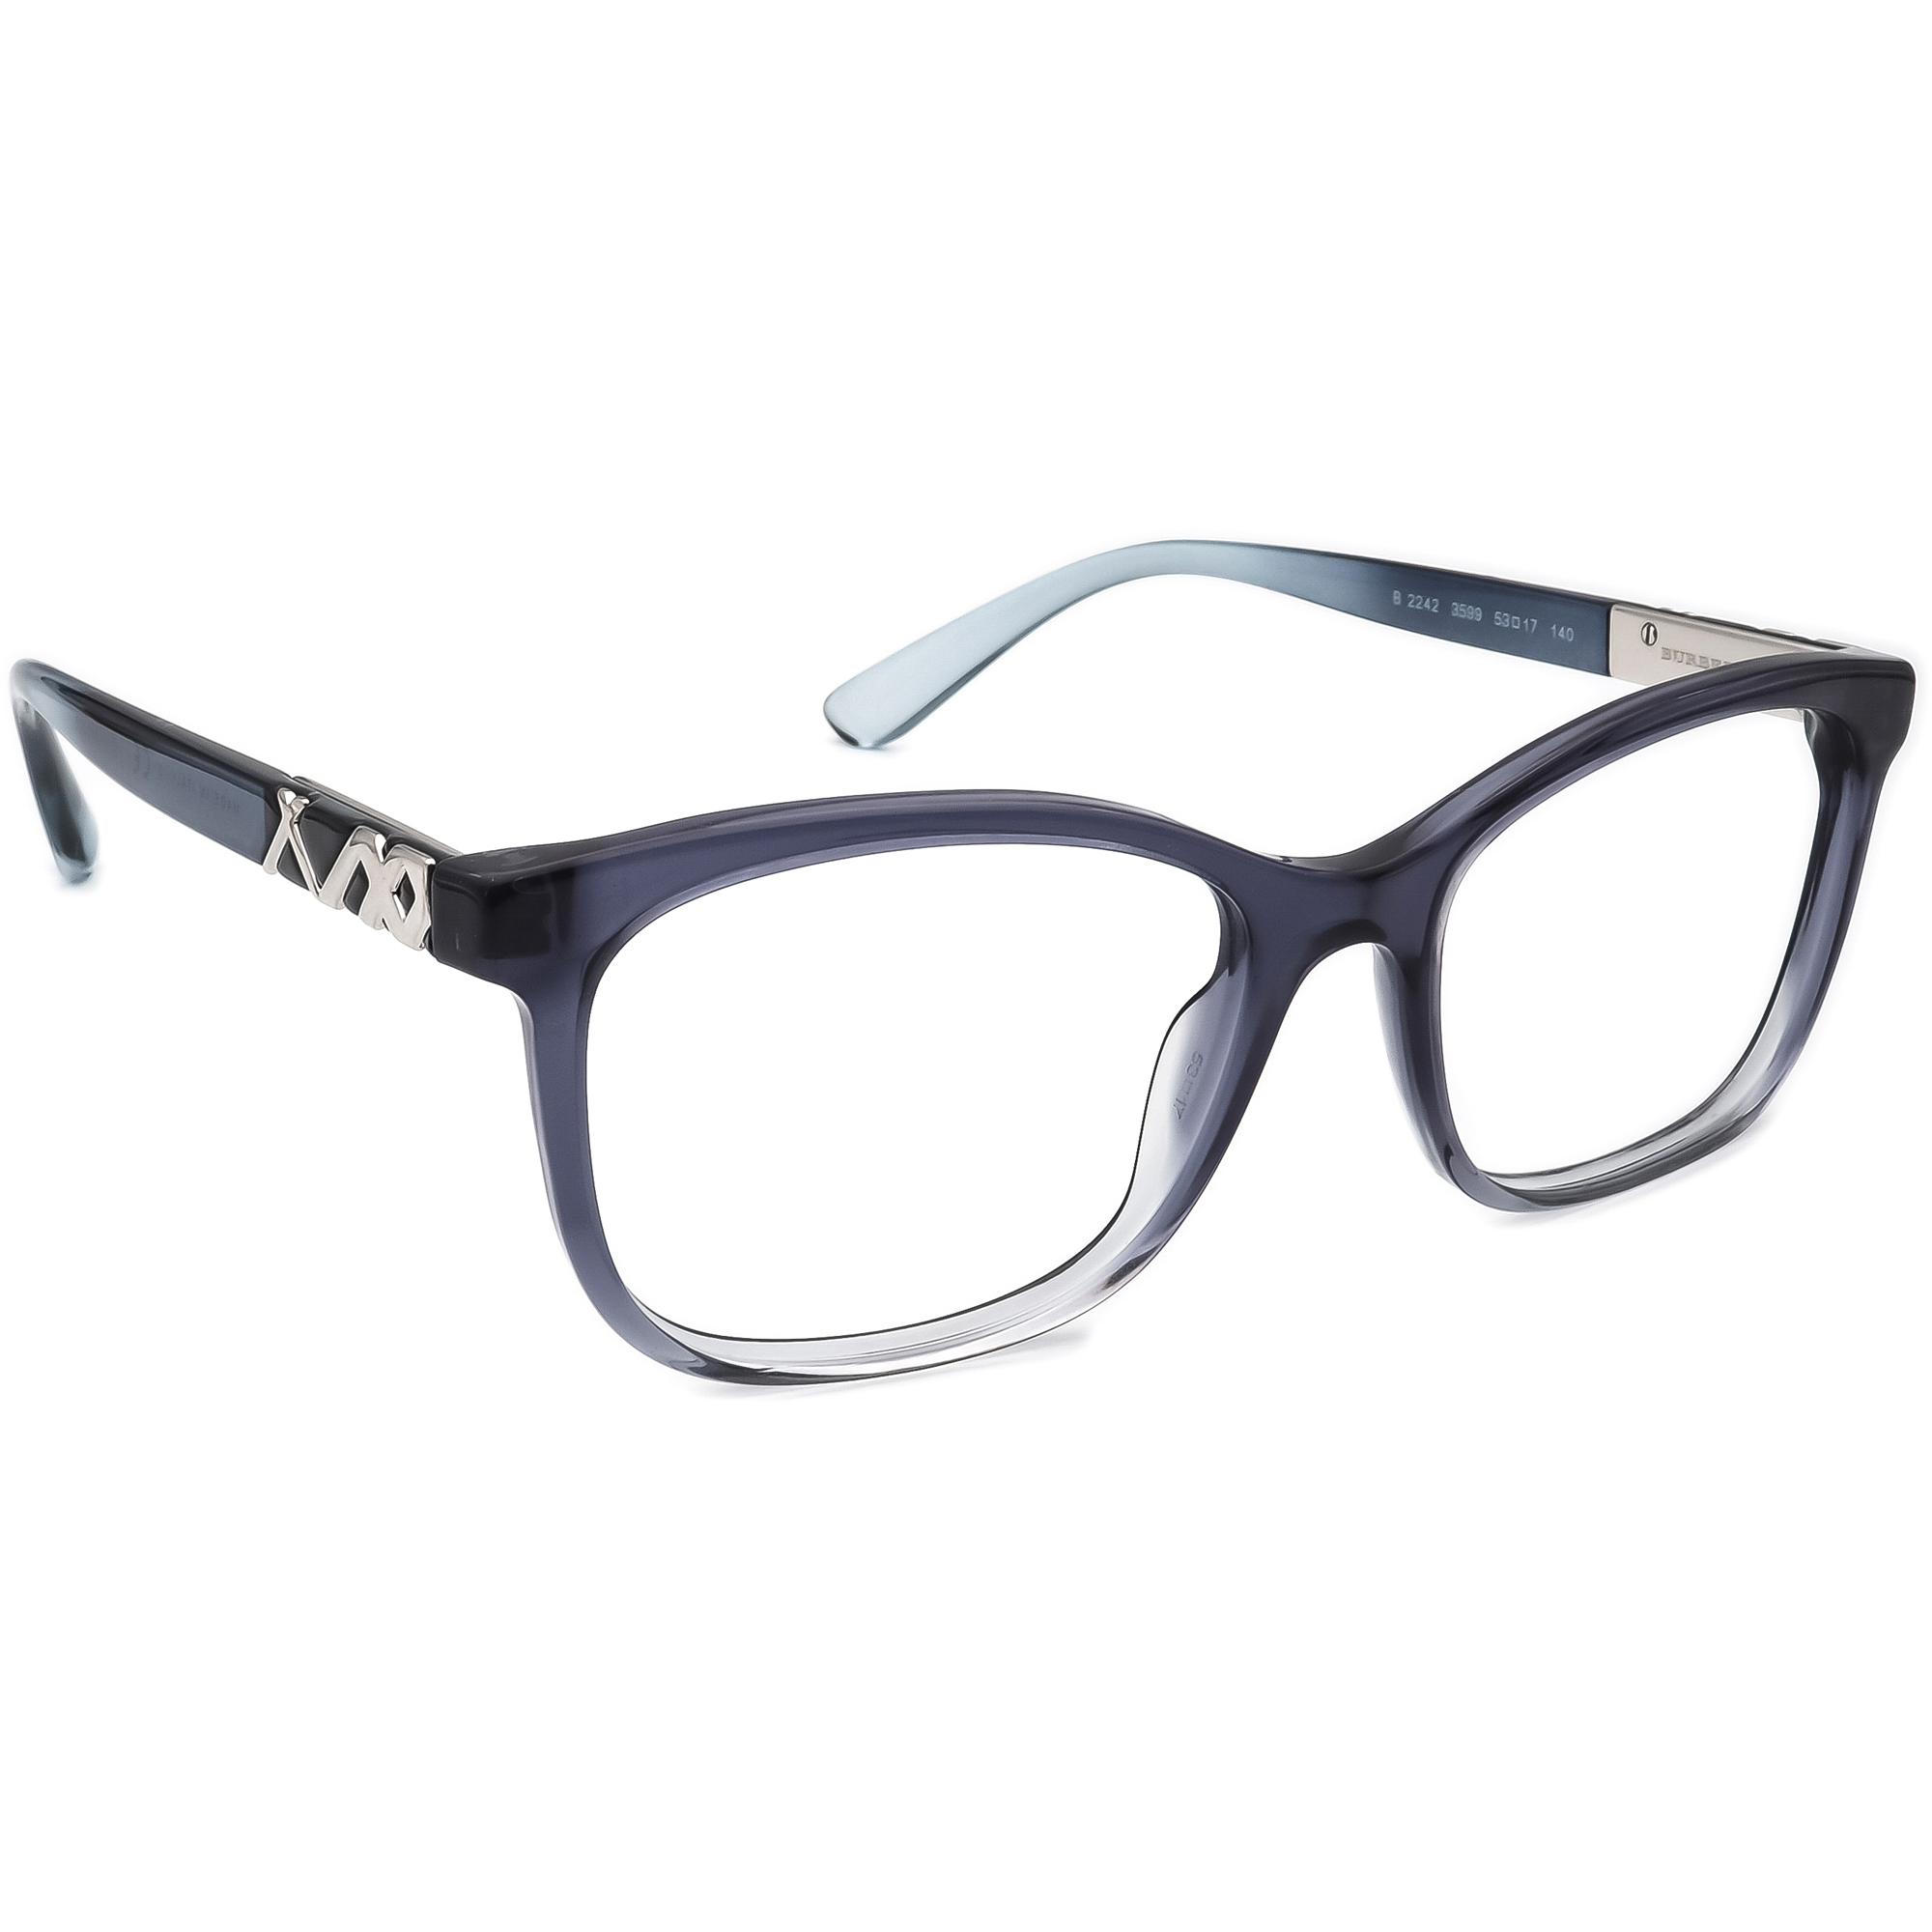 Burberry B 2242 3599 Eyeglasses